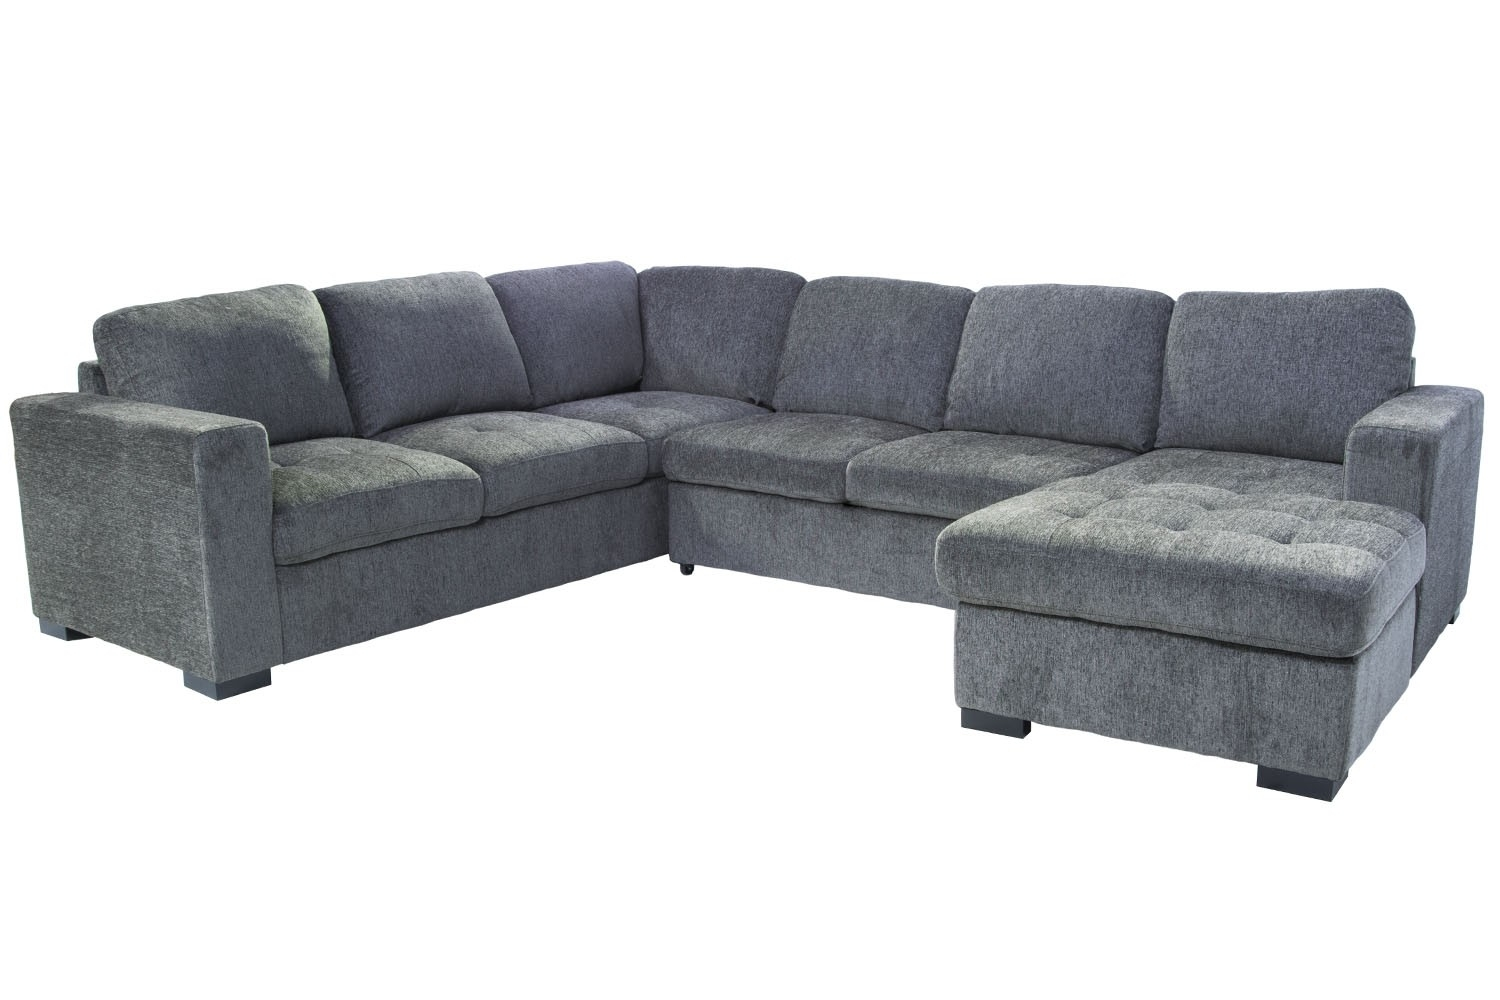 Sectional Sofas | Save Mor Online And In-Store regarding Aspen 2 Piece Sectionals With Raf Chaise (Image 28 of 30)